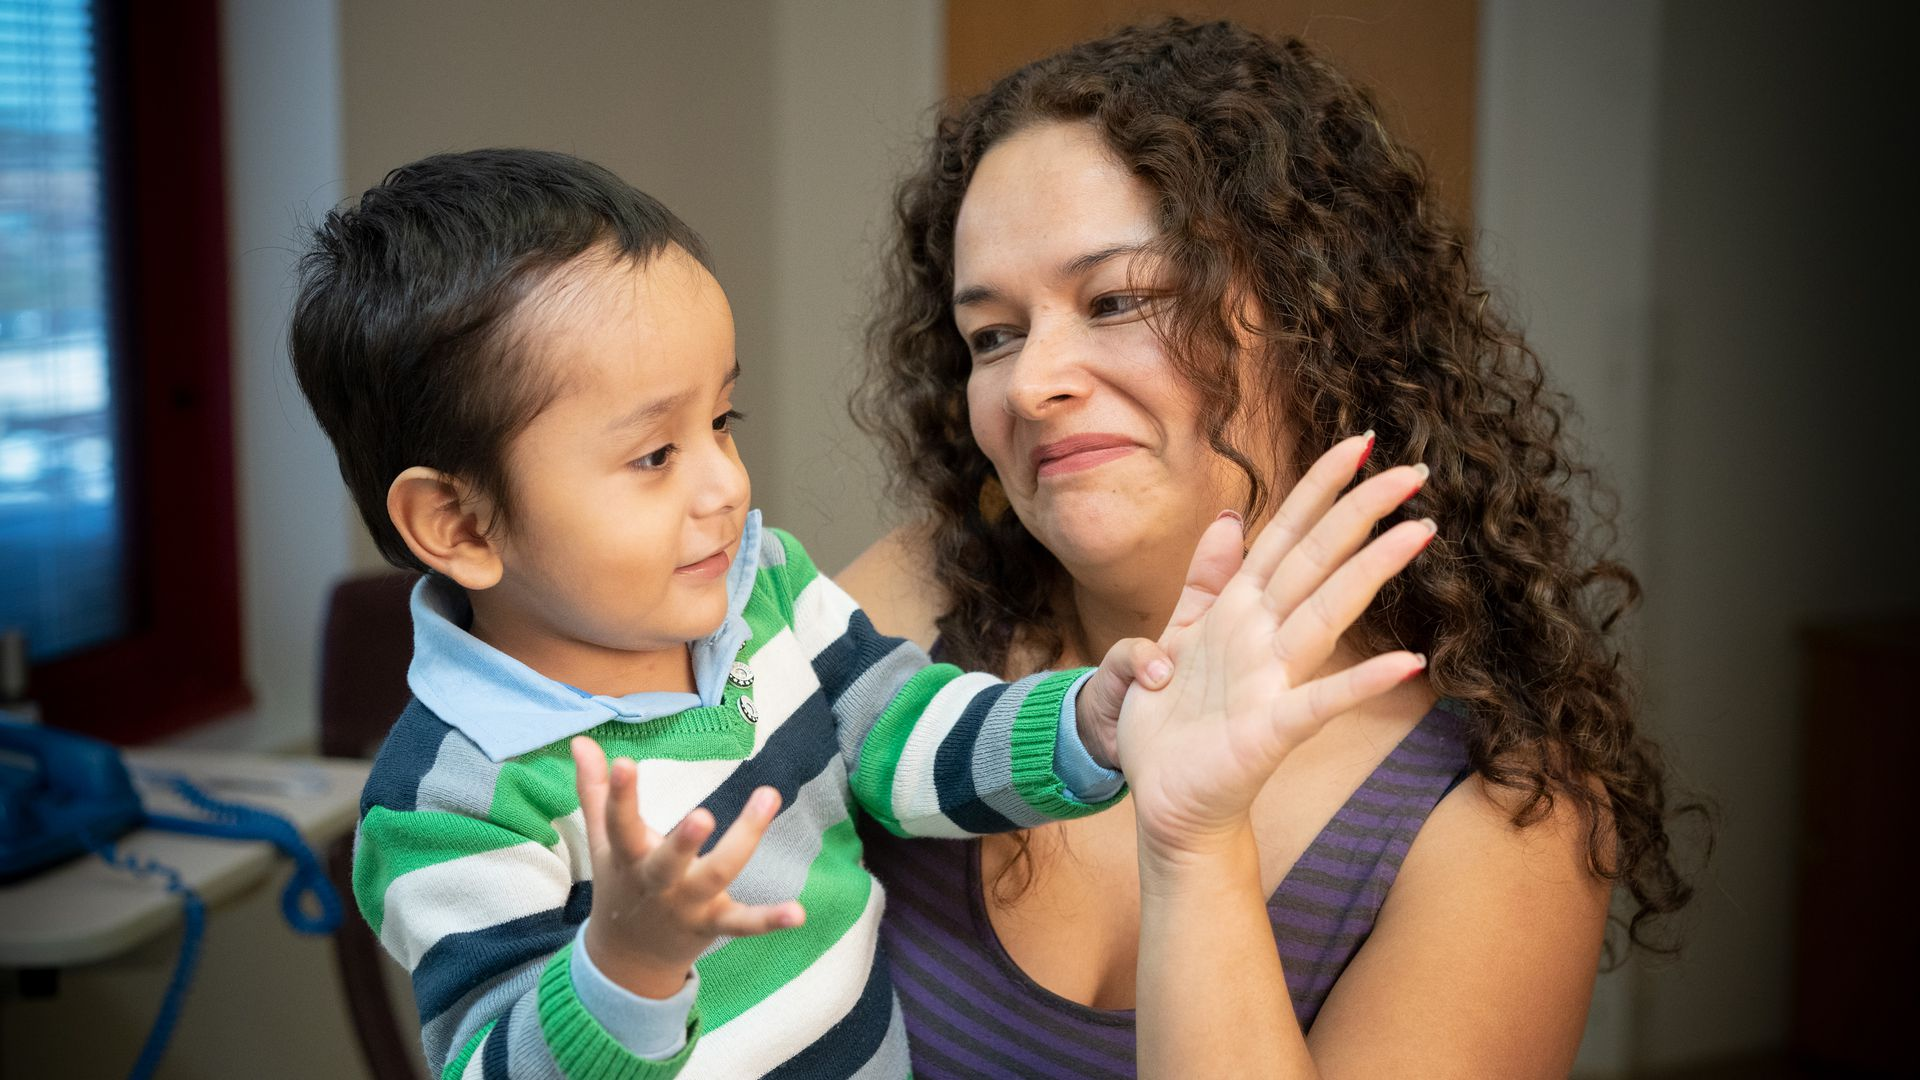 Photo of 2-year-old boy, Gael, who is playing with his Mom after receiving therapy for SCID